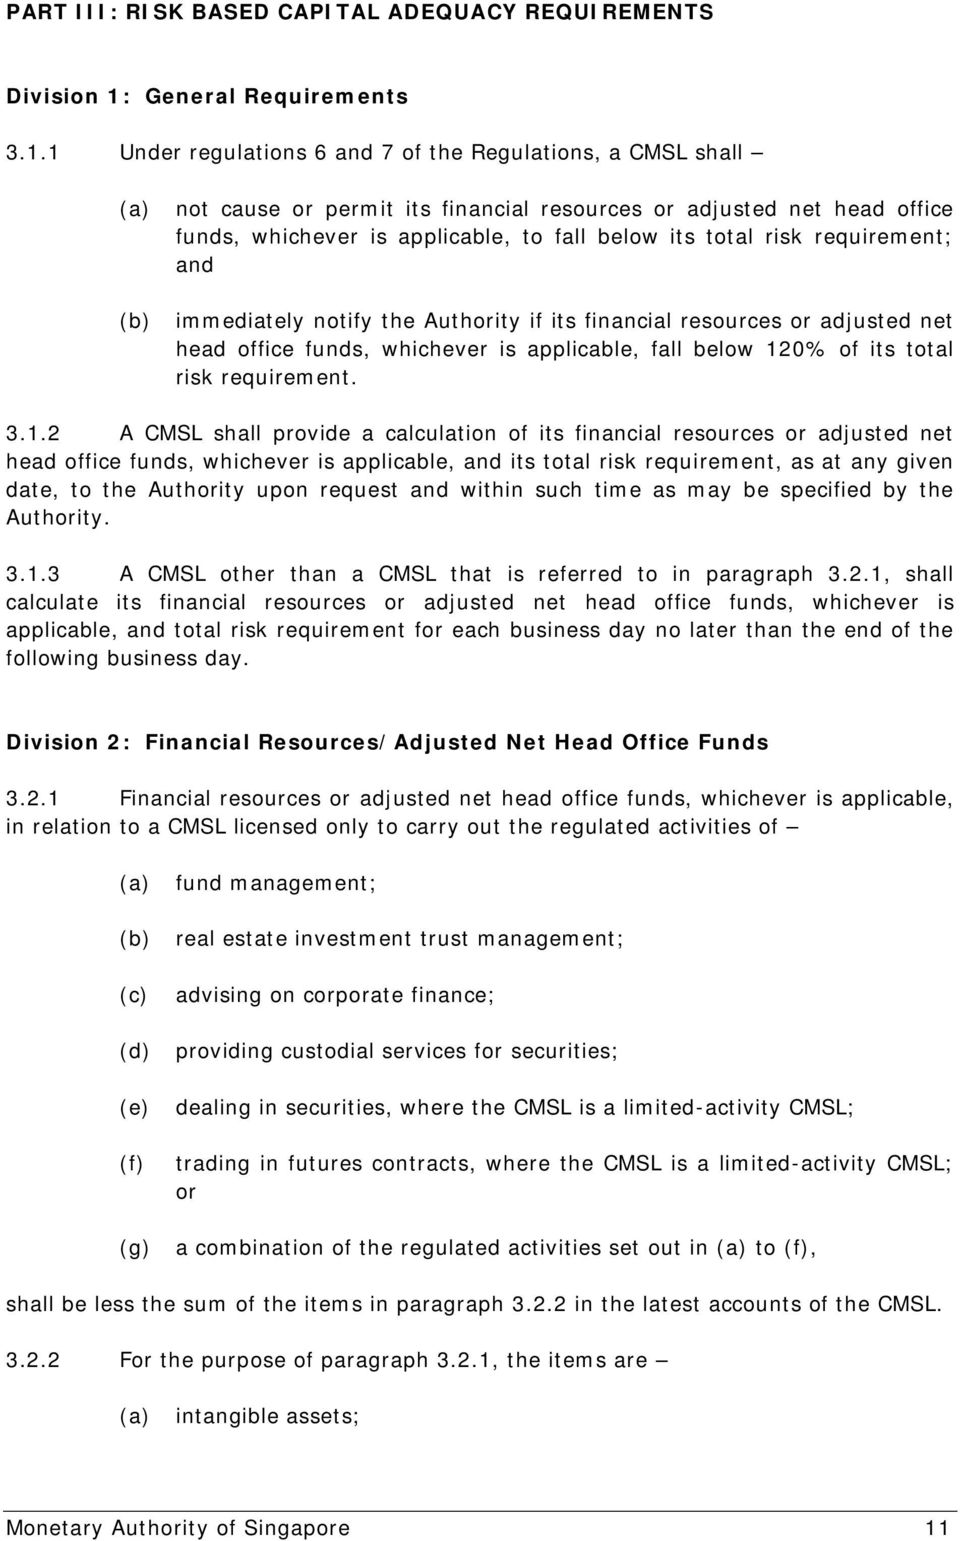 1 Under regulations 6 and 7 of the Regulations, a CMSL shall not cause or permit its financial resources or adjusted net head office funds, whichever is applicable, to fall below its total risk